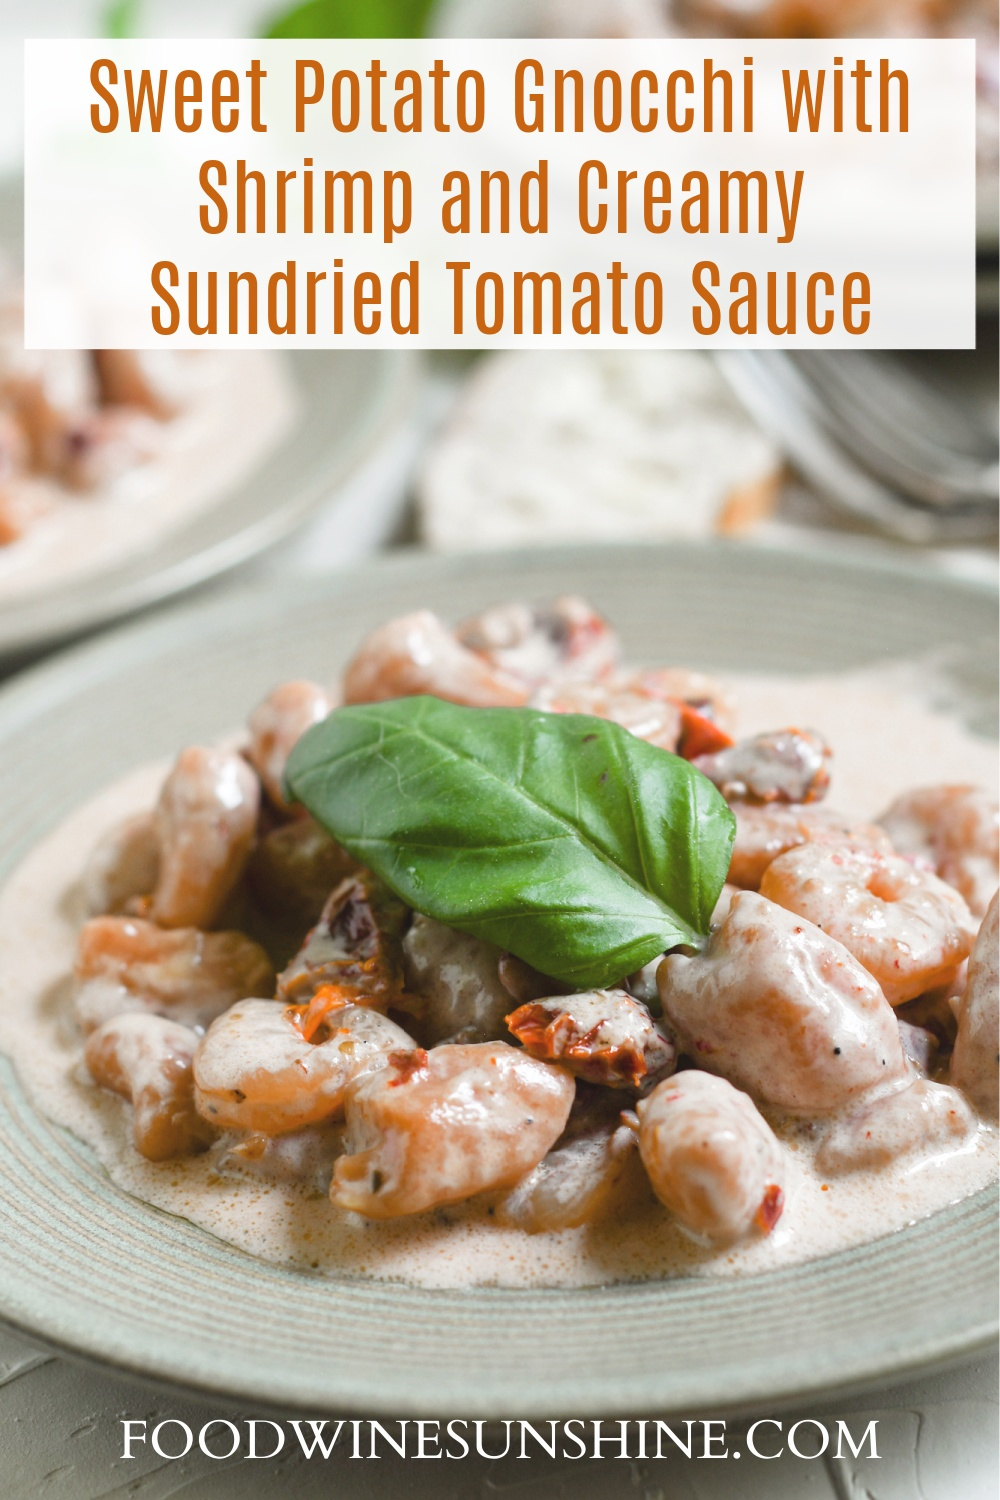 Sweet Potato Gnocchi with Shrimp and Creamy Sun Dried Tomato Sauce